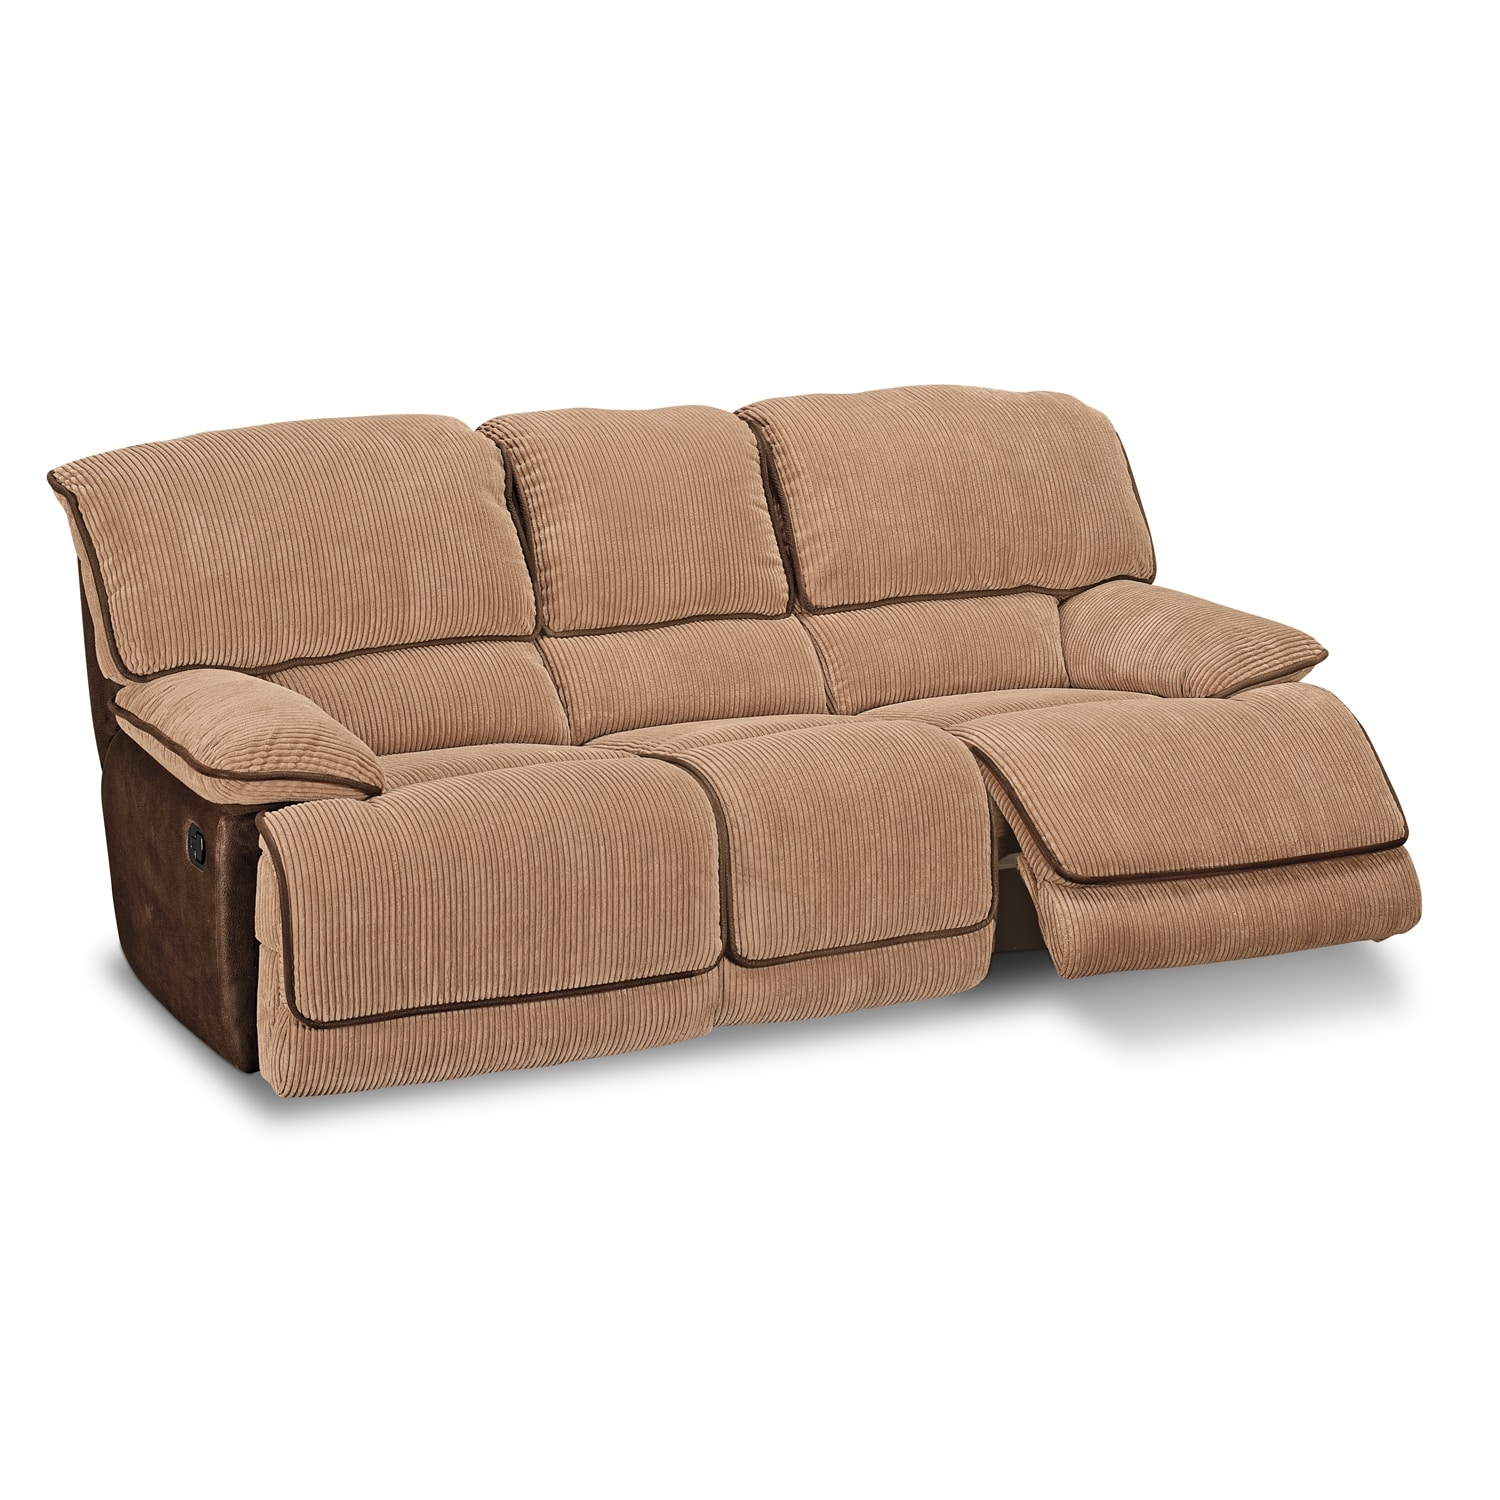 Laguna Dual Reclining Sofa Value City Furniture